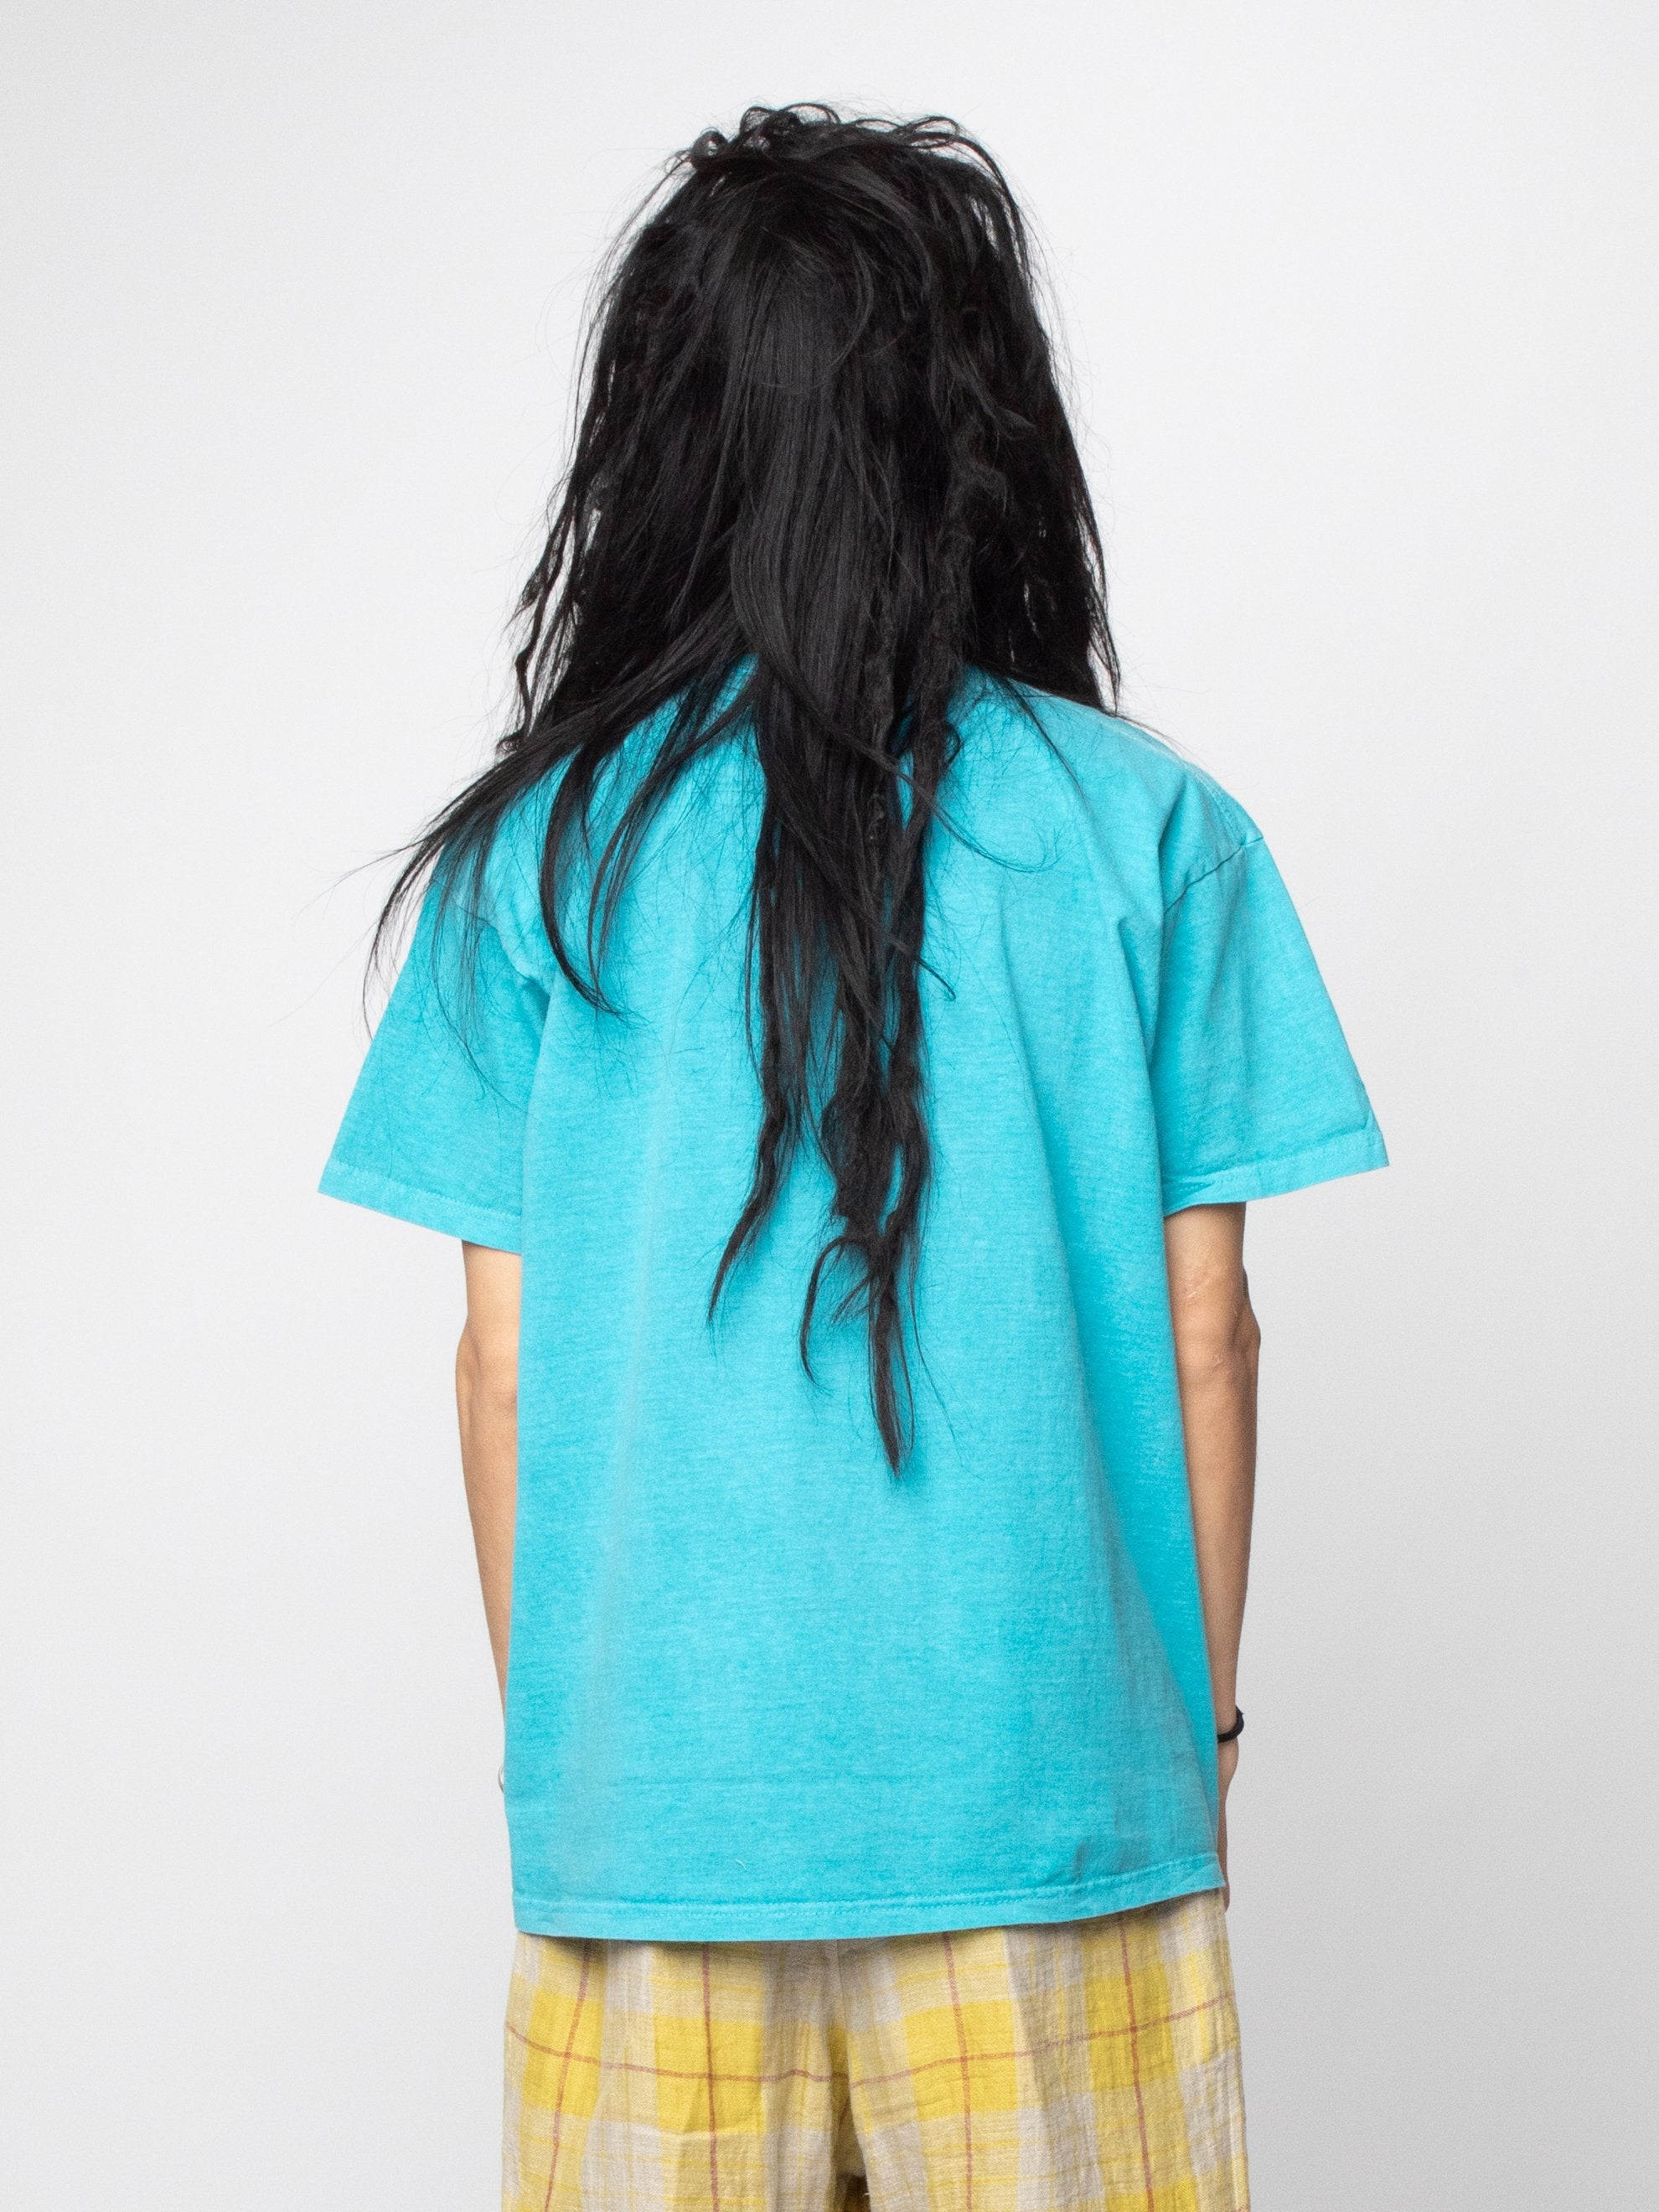 Turquoise Astro Black Garment Dyed T-Shirt 6